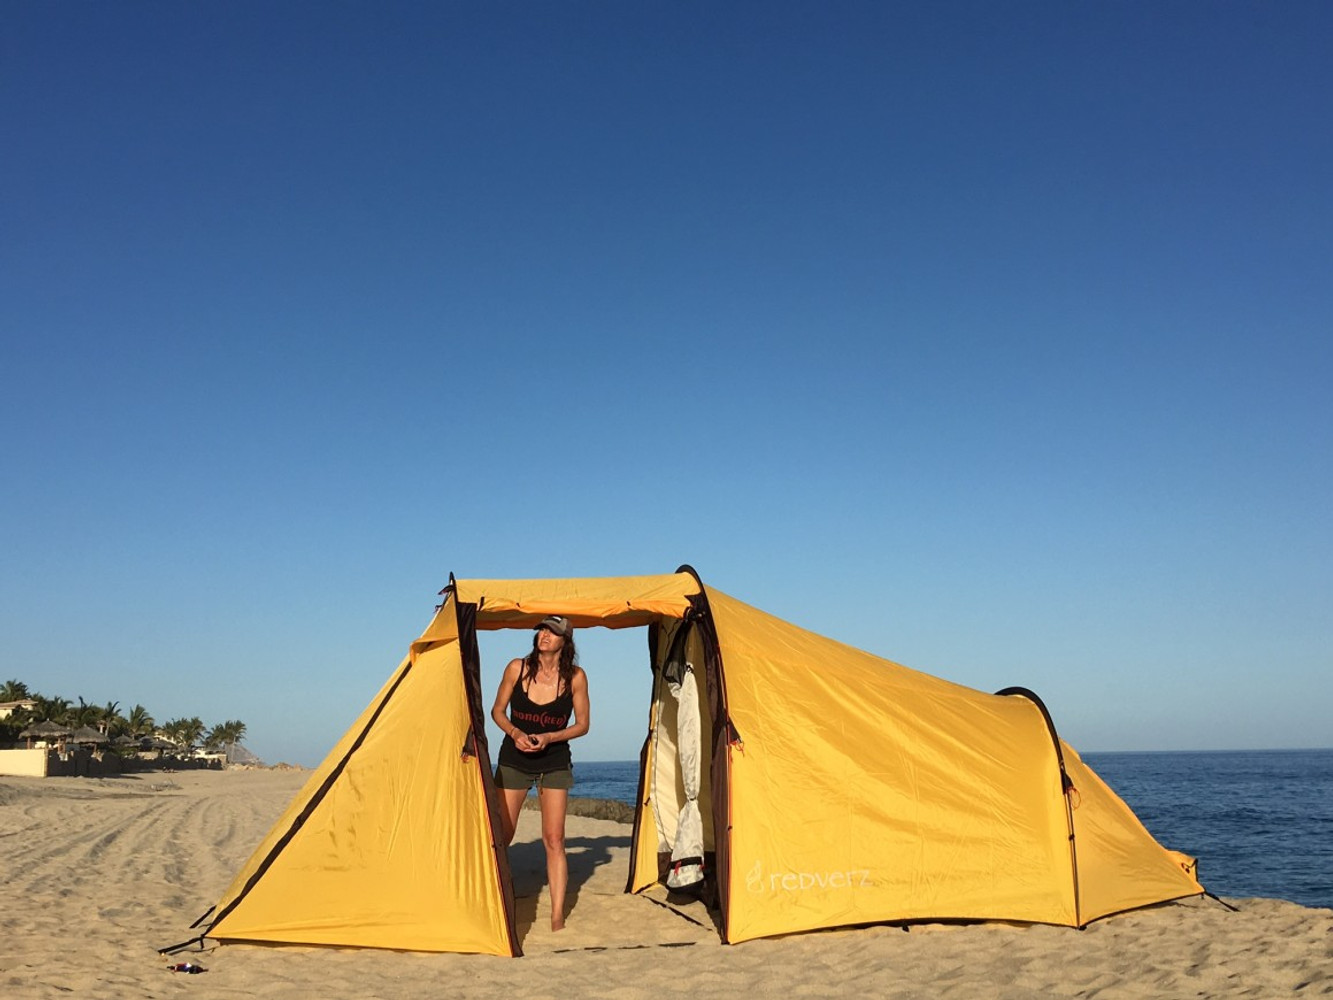 Camp Gear 101 Top 10 Essentials For Motorcycle Camping